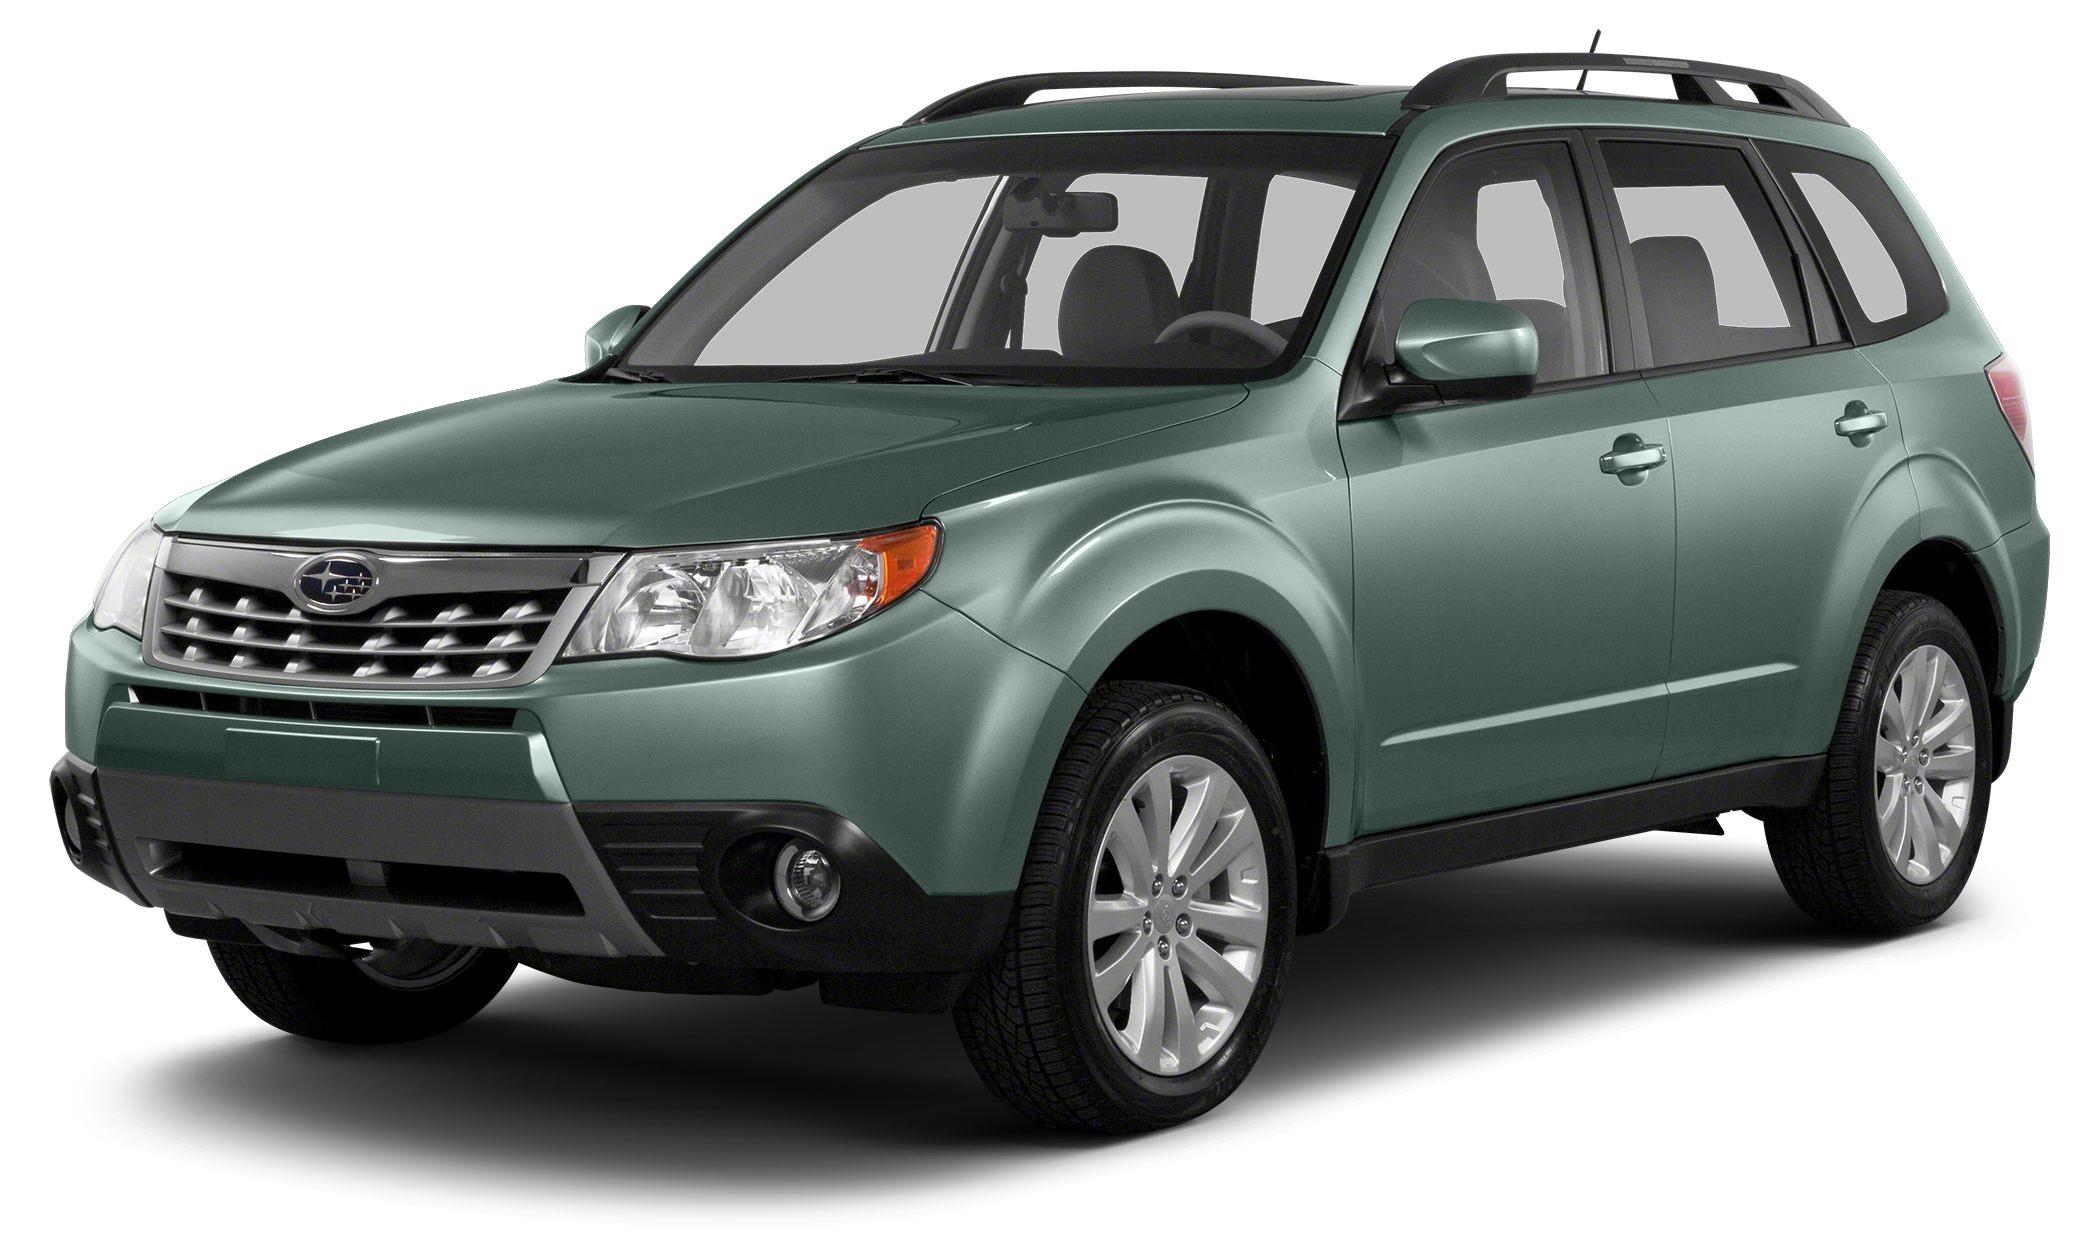 2013 Subaru Forester 25X Miles 31938Color Sage Green Metallic Stock 152320A VIN JF2SHABCXDH